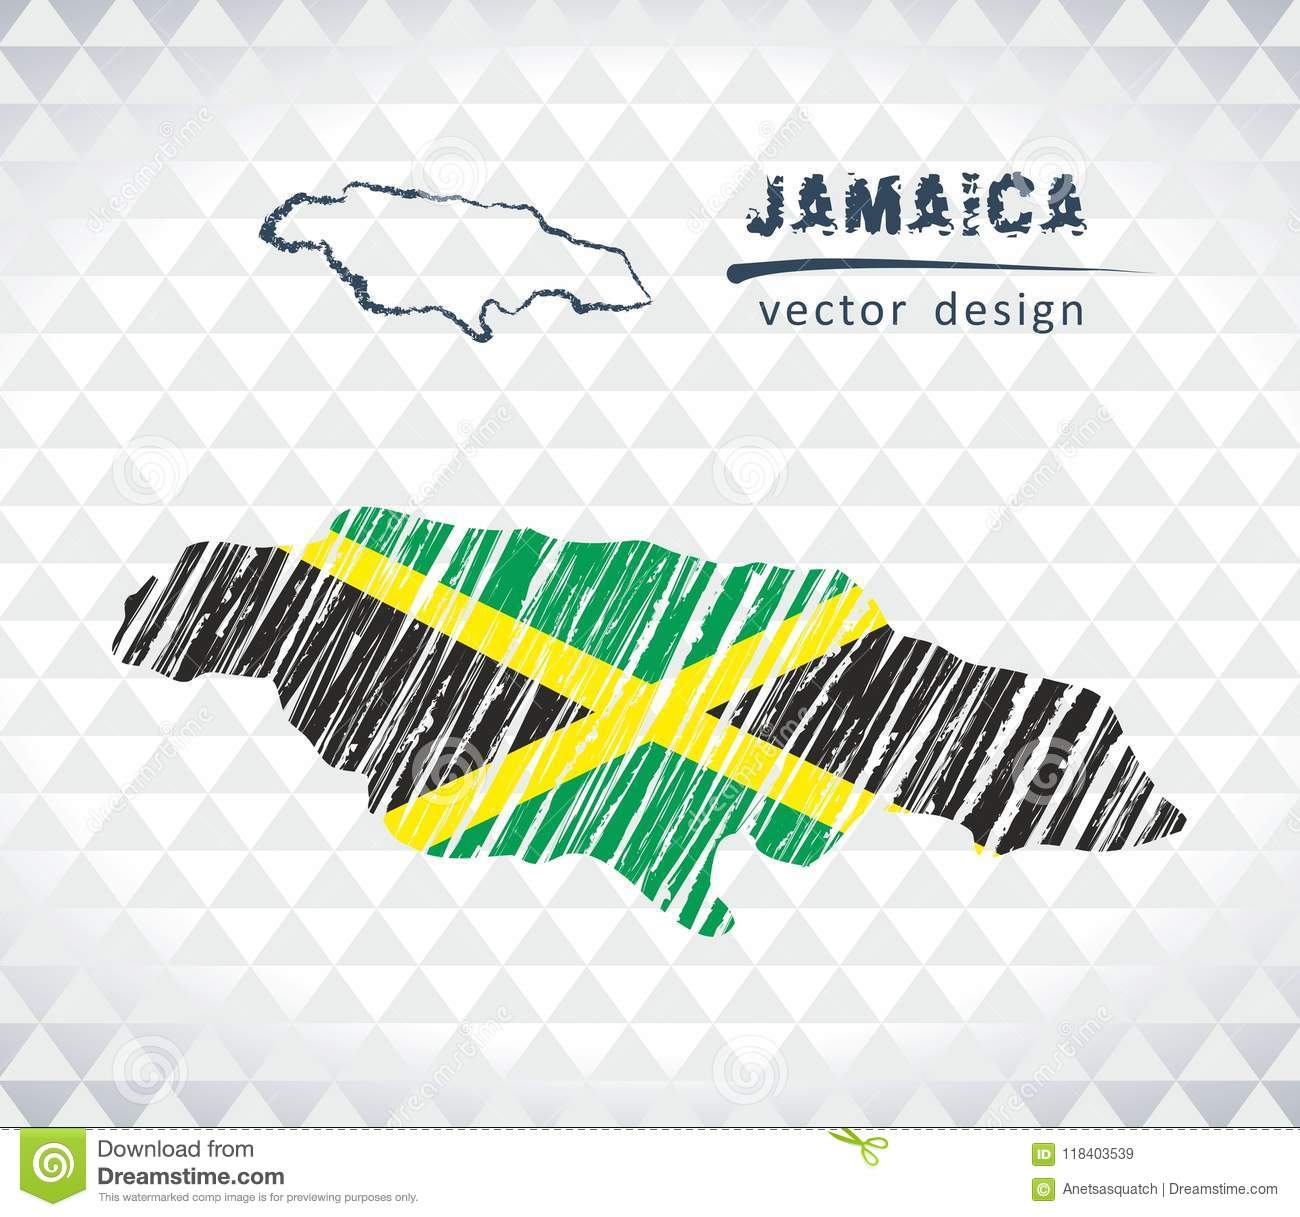 Jamaica Vector Map With Flag Inside Isolated On A White ... on map of colorado drawing, map of norway drawing, map of mexico drawing, map of india drawing, map of greece drawing, map of peru drawing, map of brazil drawing, map of north america drawing, map of egypt drawing, map of ireland drawing, map of guyana drawing, map of singapore drawing, map of arizona drawing, map of fiji drawing, map of iraq drawing, map of world drawing, map of africa drawing, map of germany drawing, map of new york drawing, map of japan drawing,